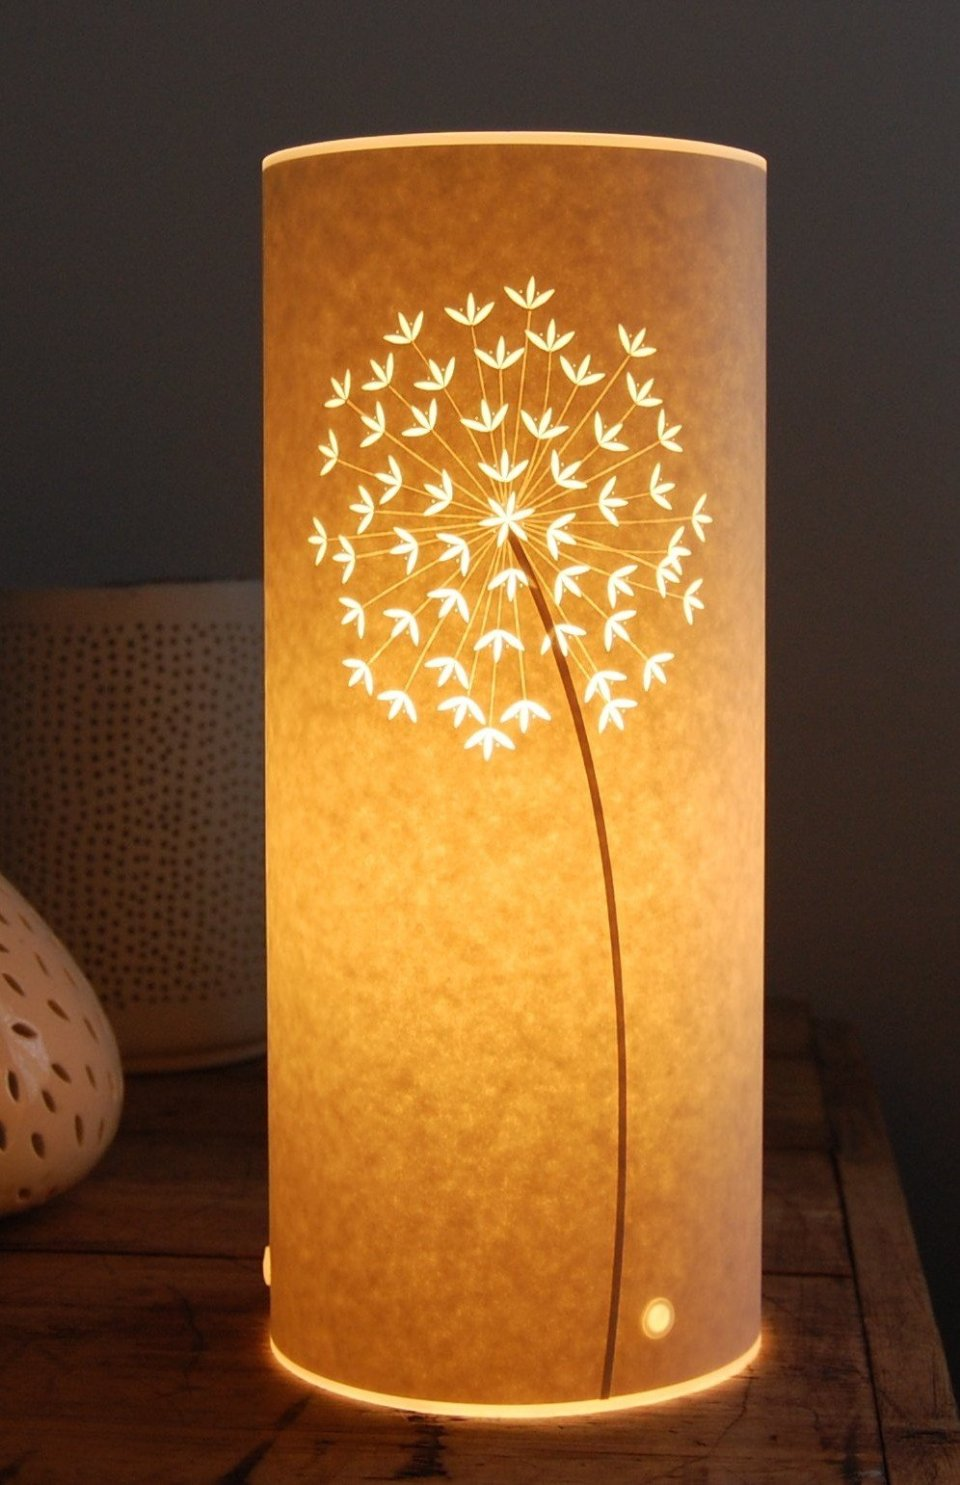 Lamp Shade Chandelier | Homemade Decorative Lamp Shade Ideas | FarmFoodFamily